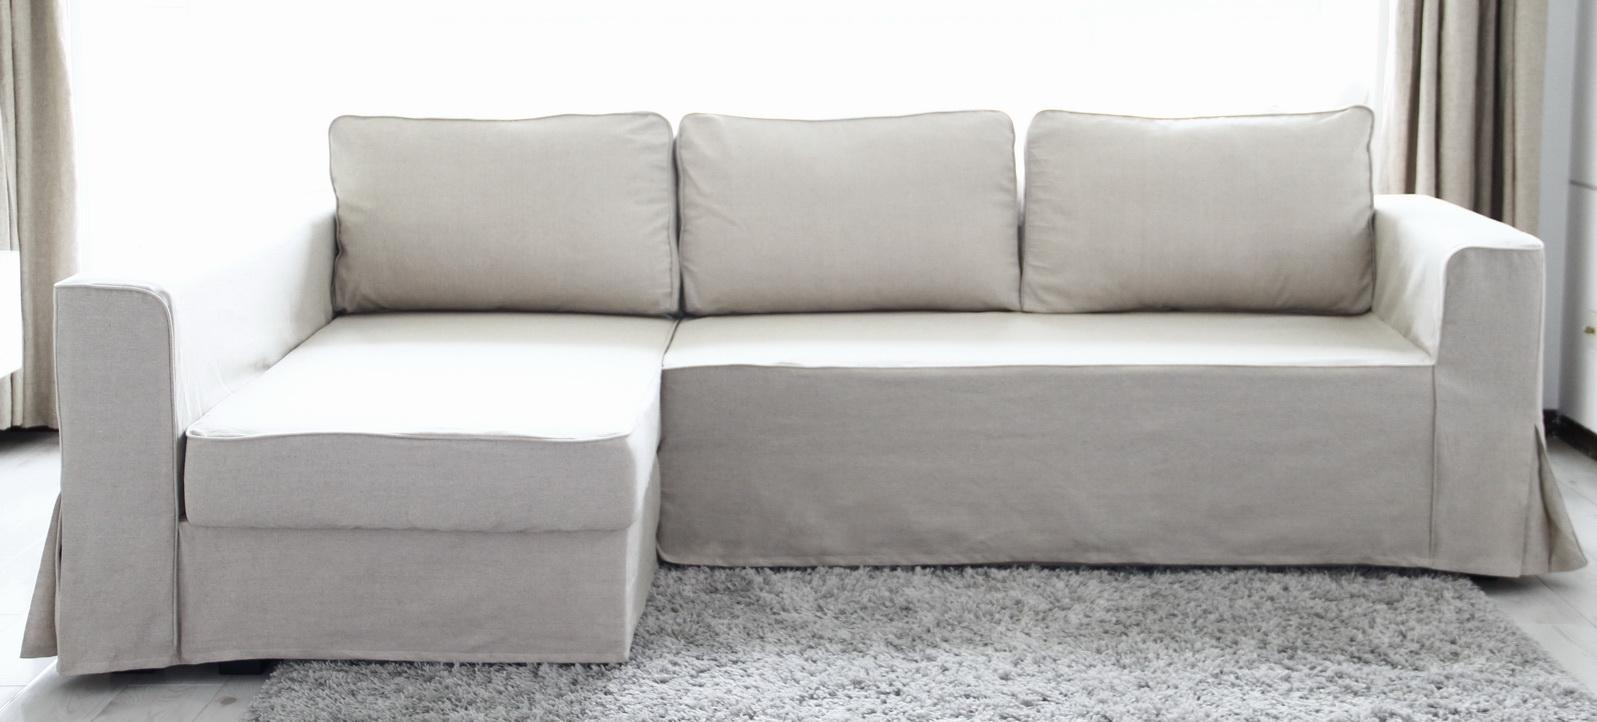 Furniture: Ikea Sleeper Sofa | Sleeper Sectional Sofa Ikea Throughout Sleeper Sectional Sofa Ikea (Image 8 of 20)